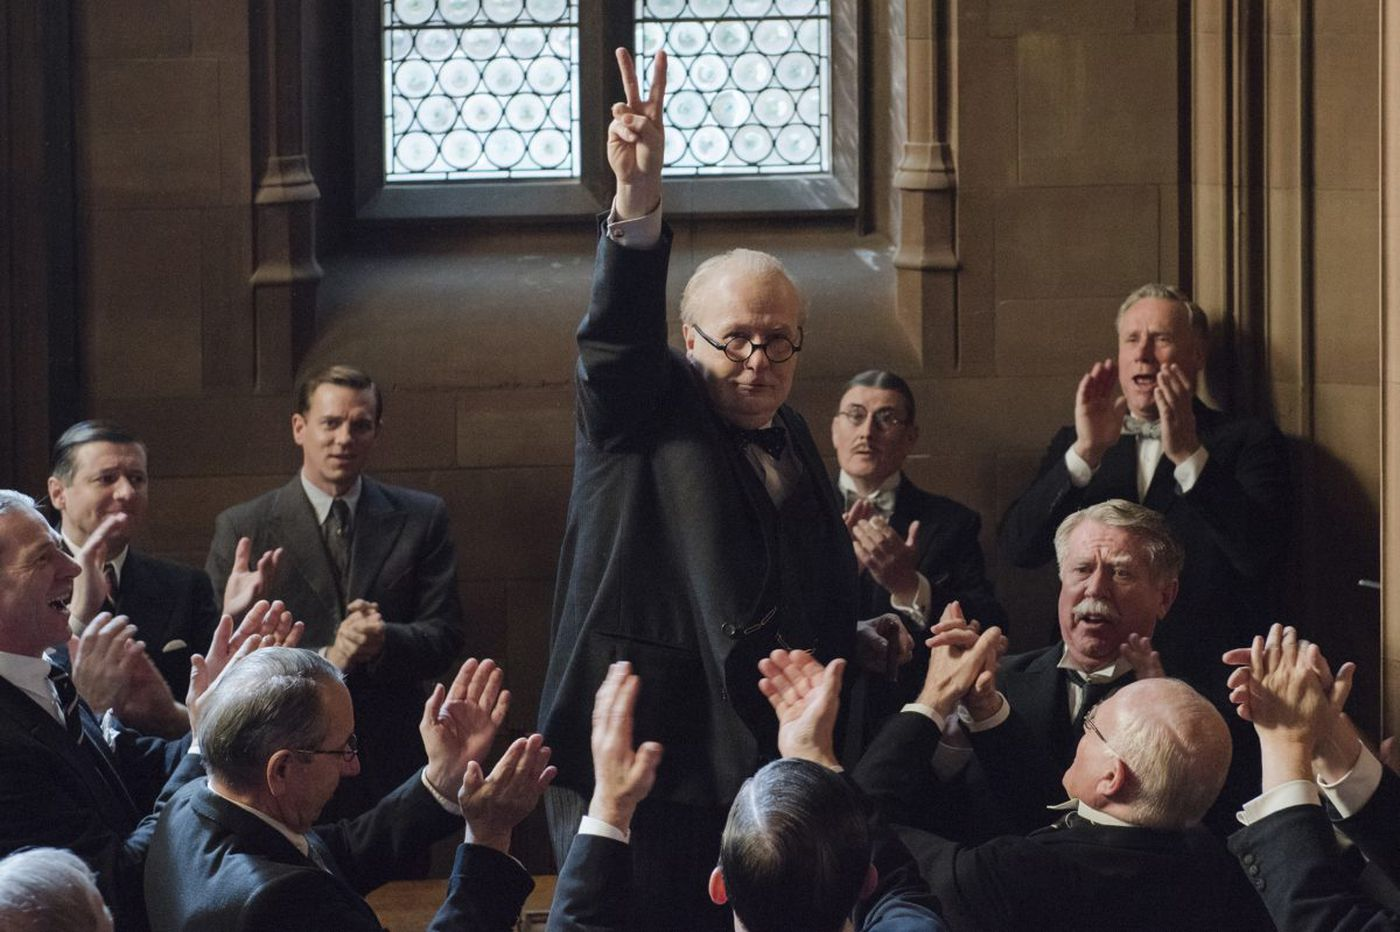 Winston Churchill biopic is a reminder that America can rise above this darkest of hours | Opinion